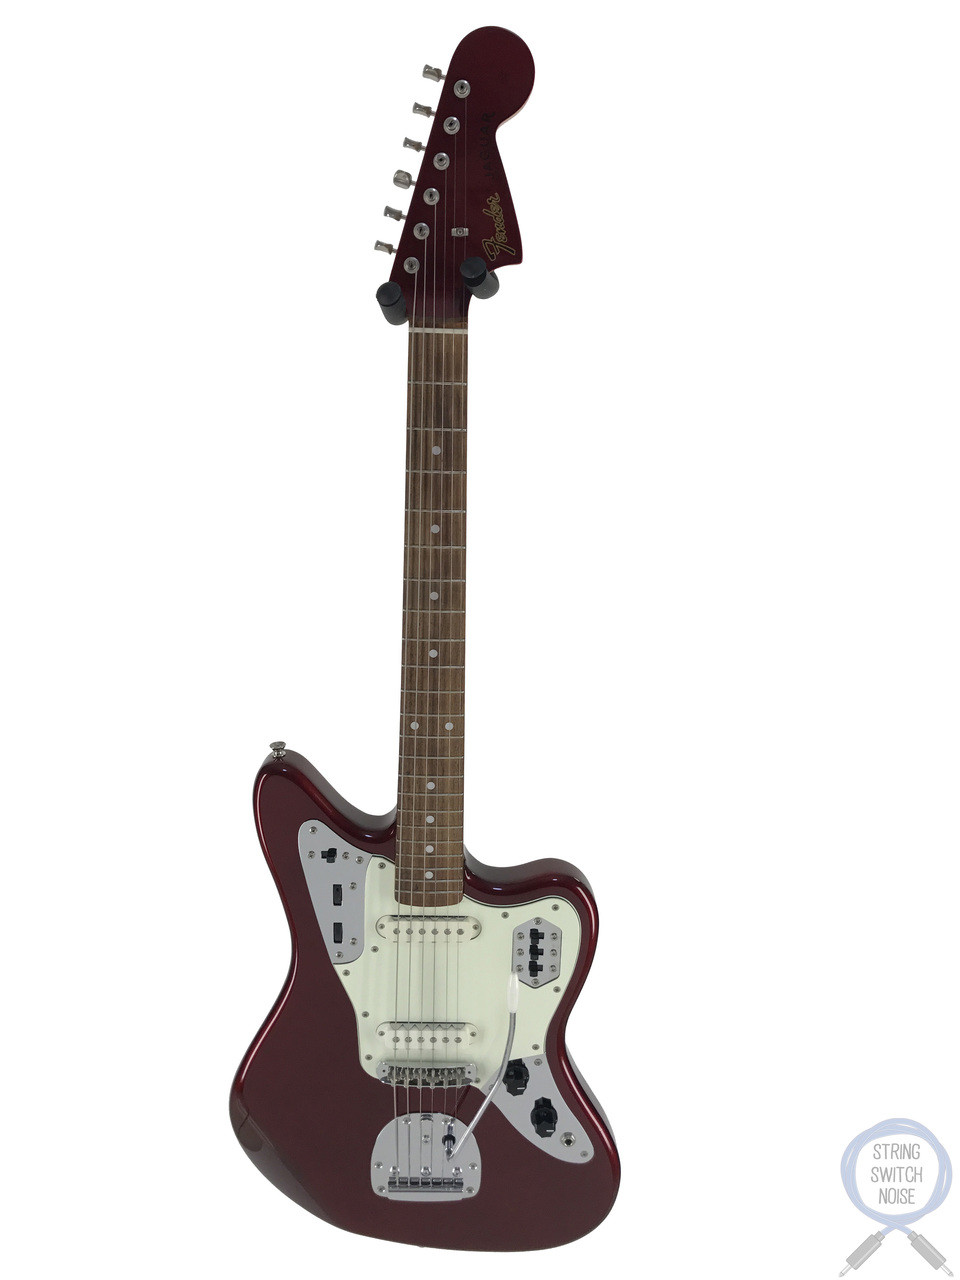 Fender Jaguar, '66 Matching Headstock, Old Candy Apple Red, 2013